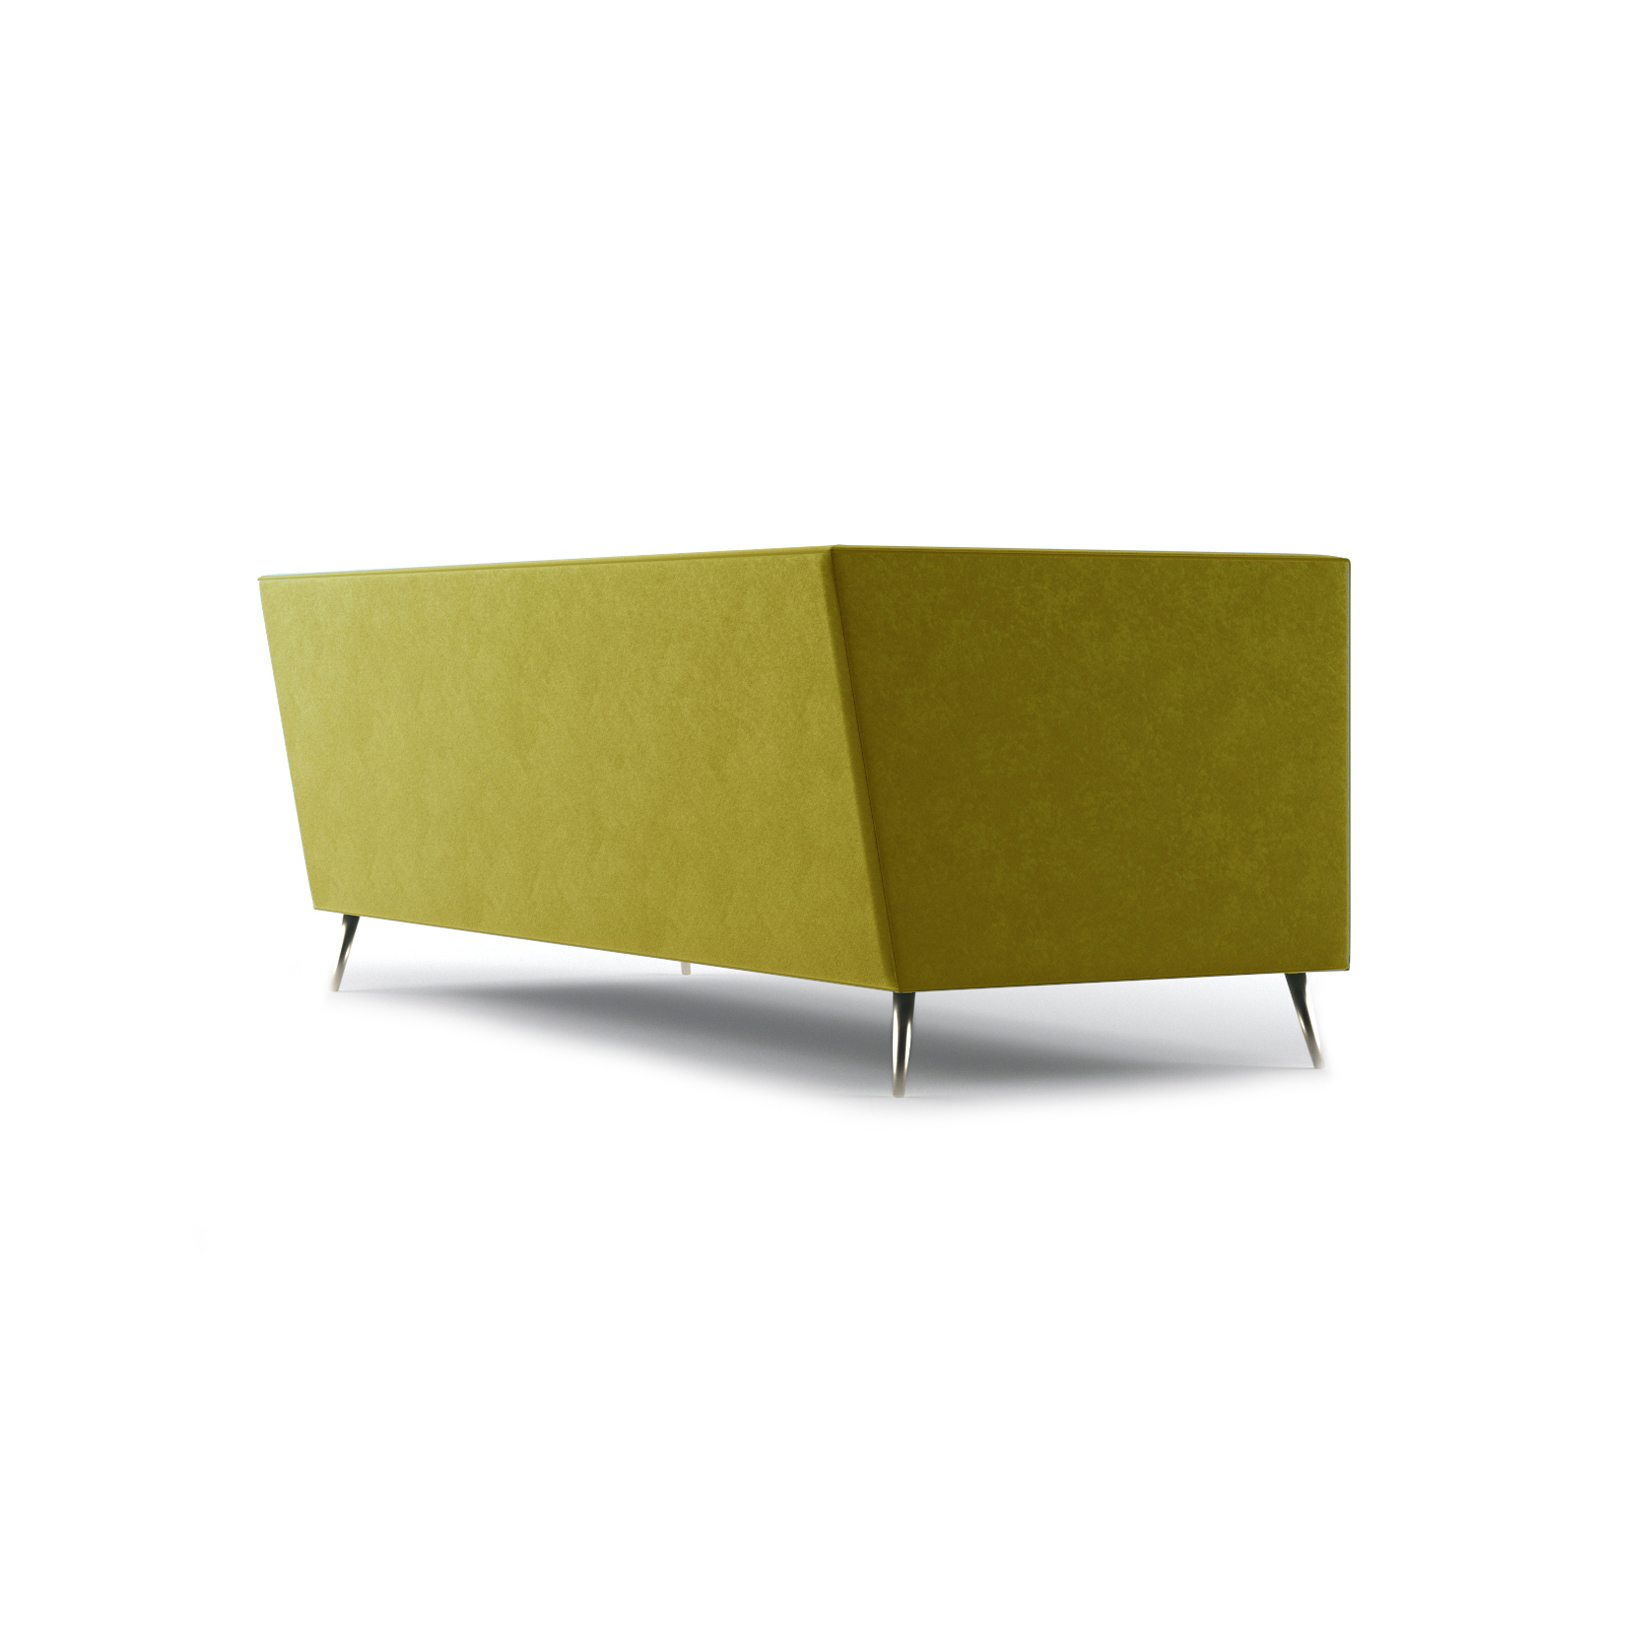 Connick Three and a Half Seater Sofa by Bonham & Bonham Gold 09